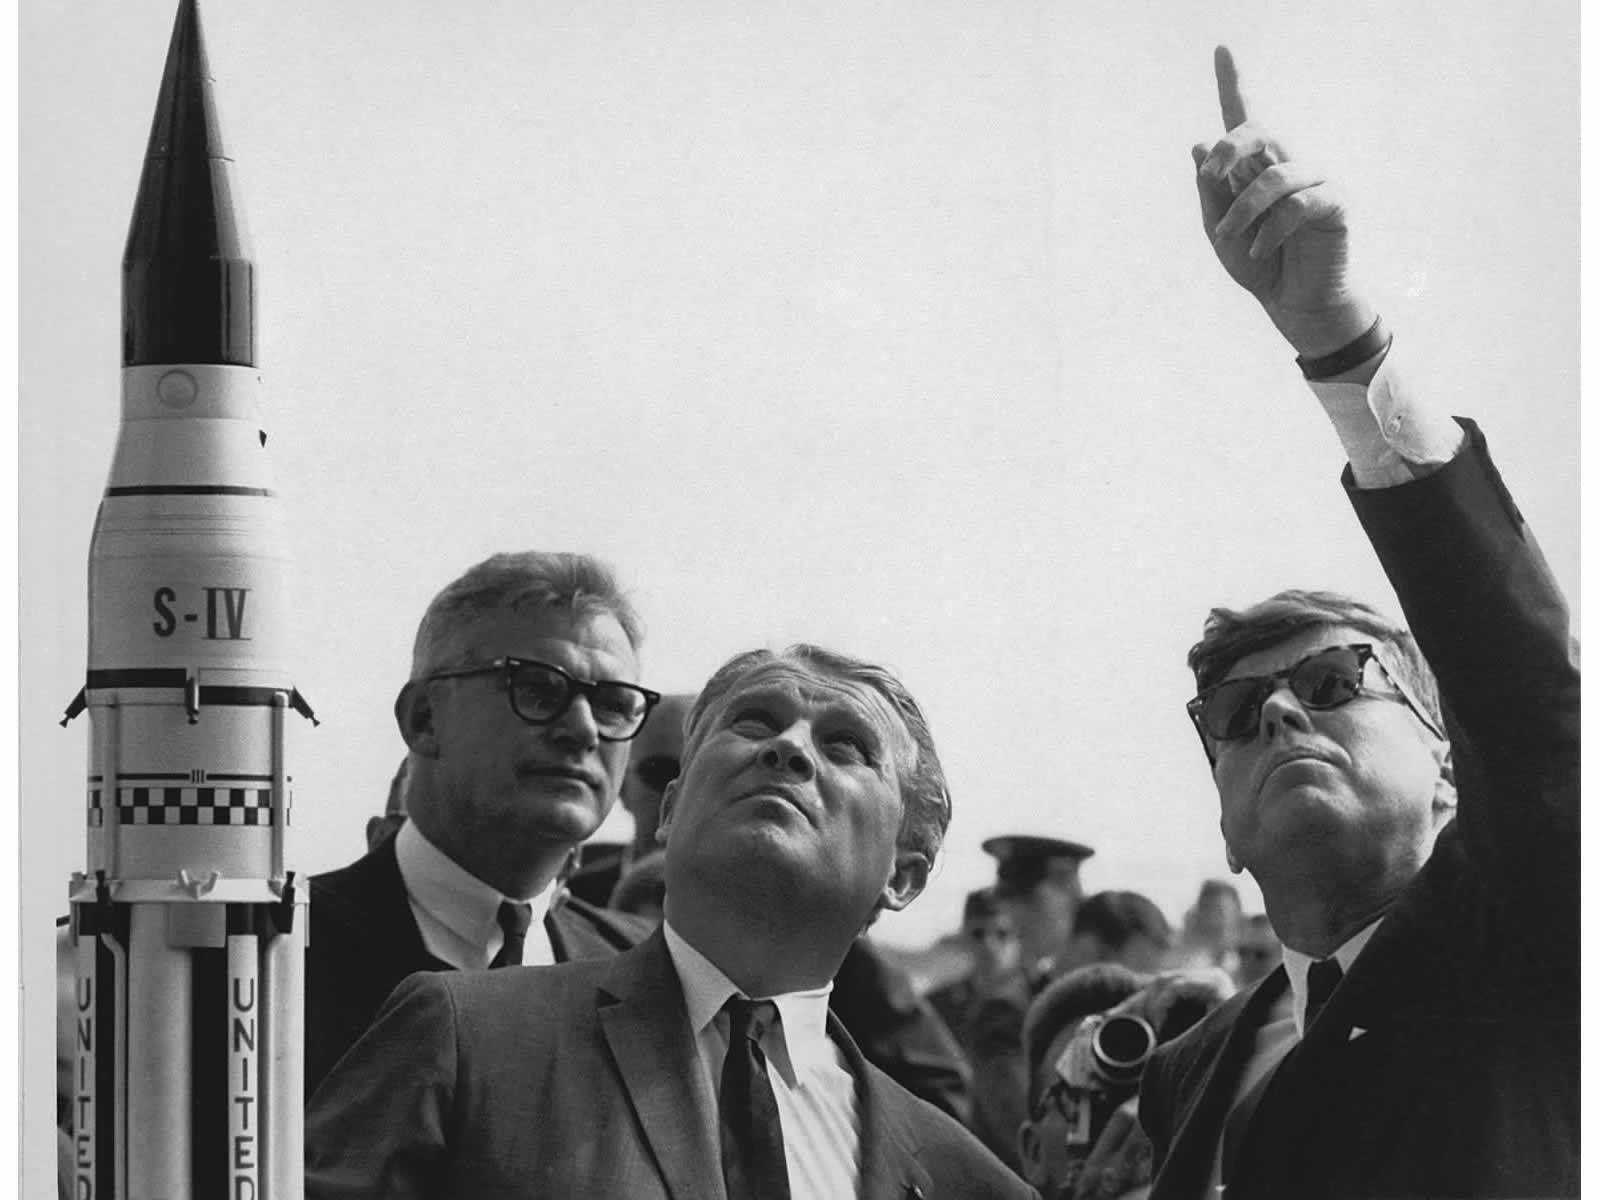 President John F. Kennedy learns about the Saturn launch system from Dr. Wernher von Braun.